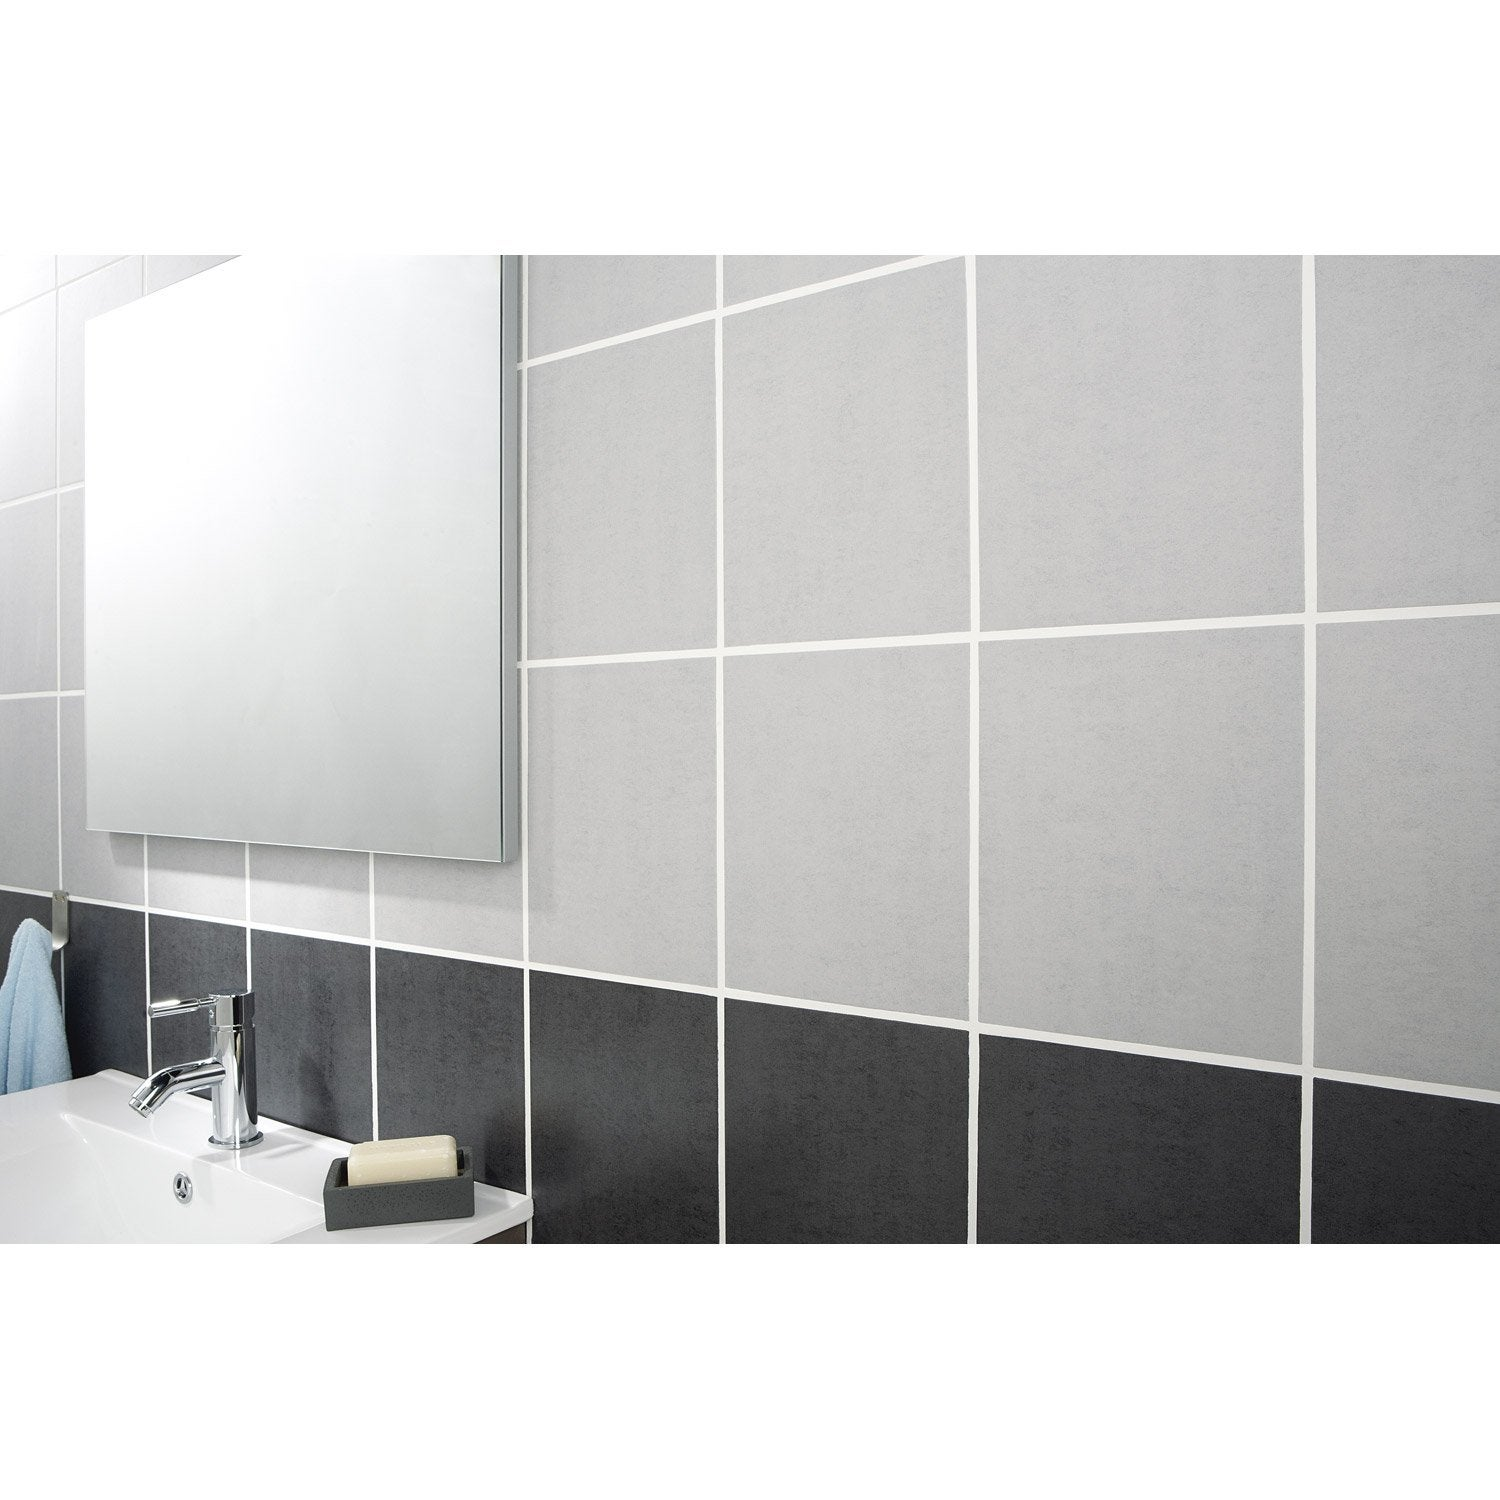 Fa ence mur gris clair fly a ro x cm leroy merlin for Carrelage 50x50 gris clair